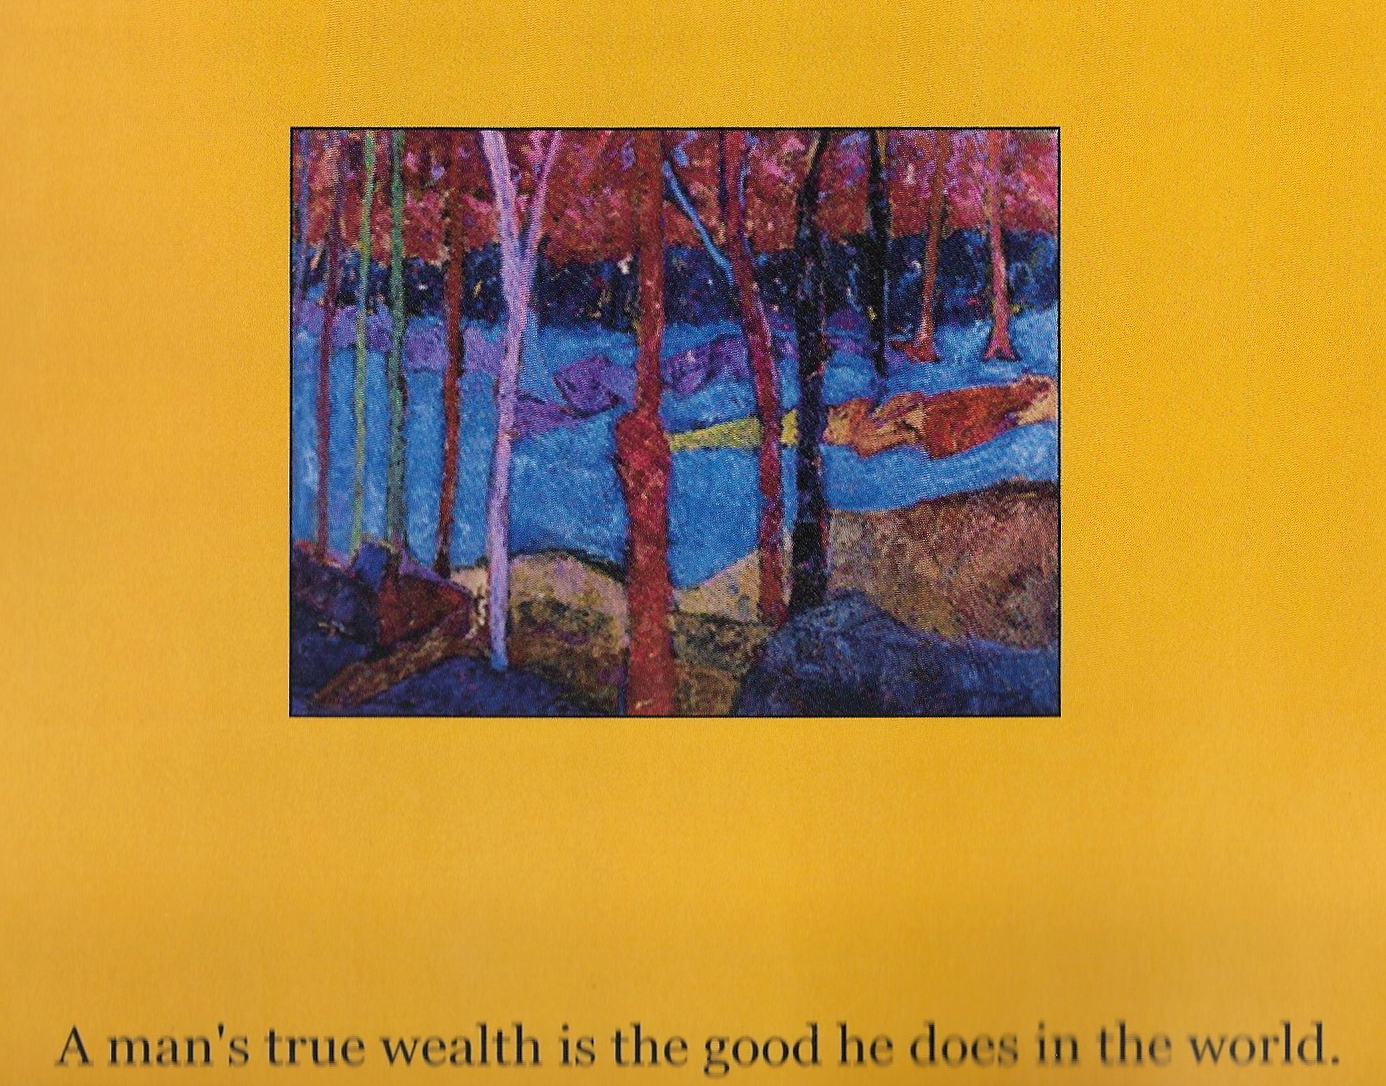 From the book by Caron Cicero McCormick, on Renee Maloof McCormick's paintings.